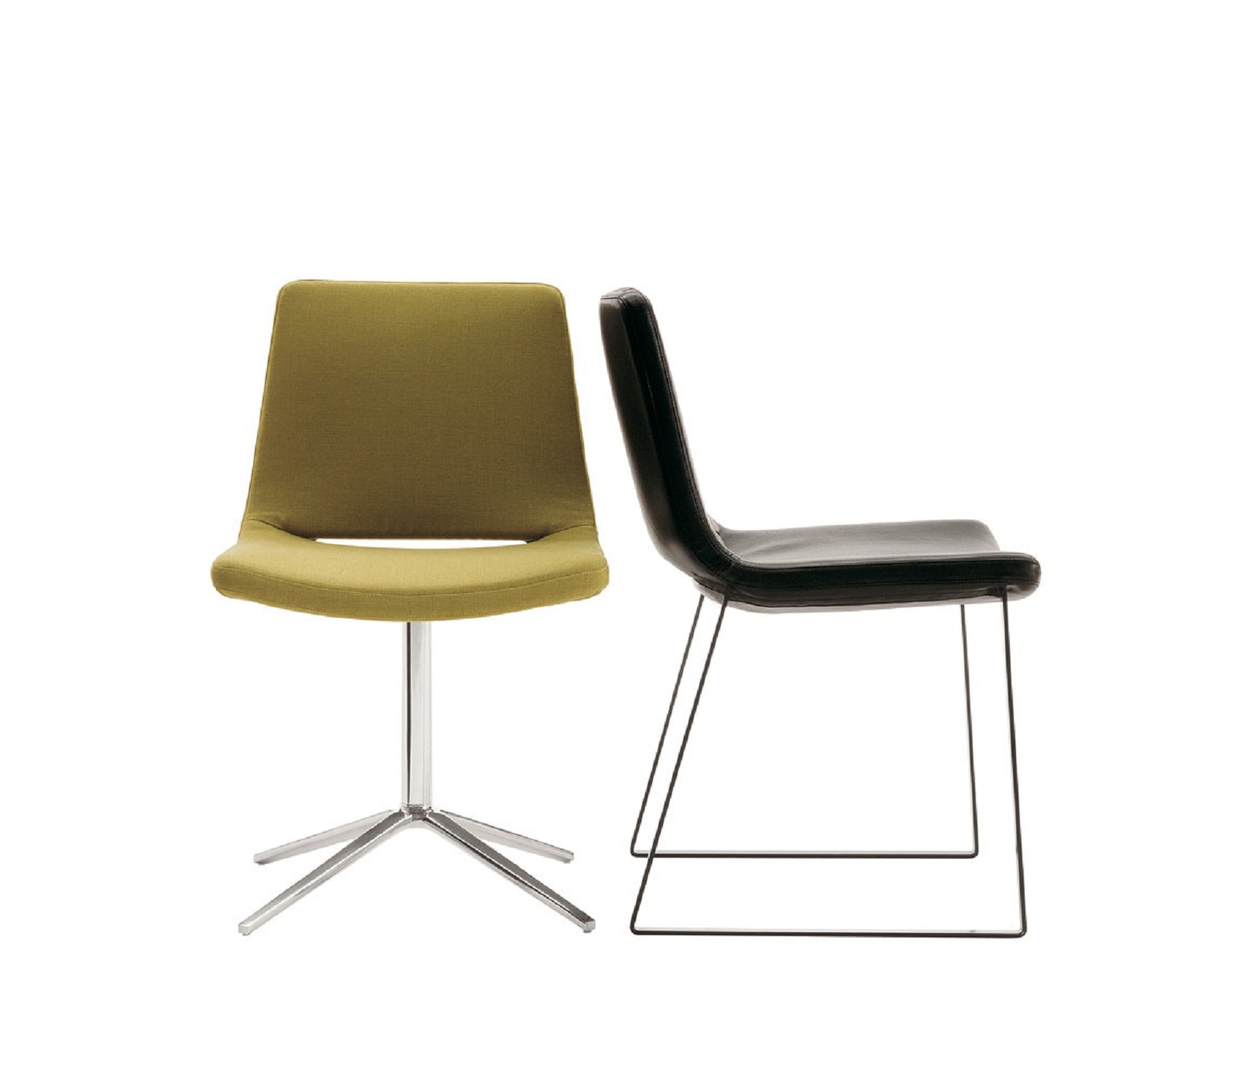 Chair slide base1.png